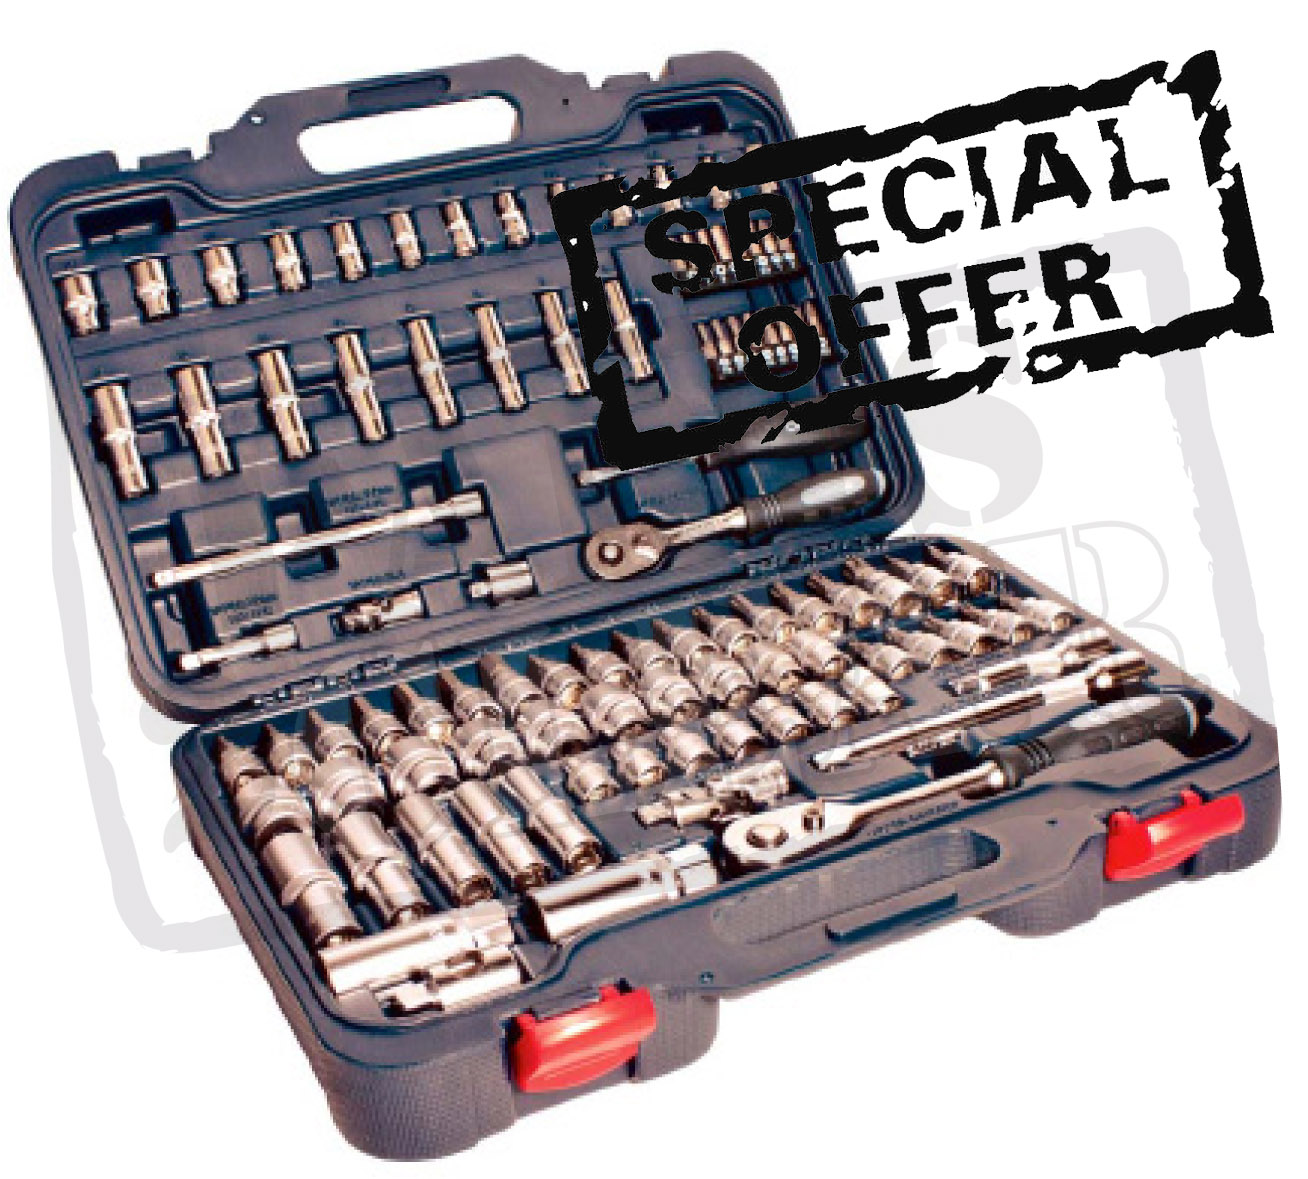 torq tool set aliexpress 33pc security bit set tamper proof